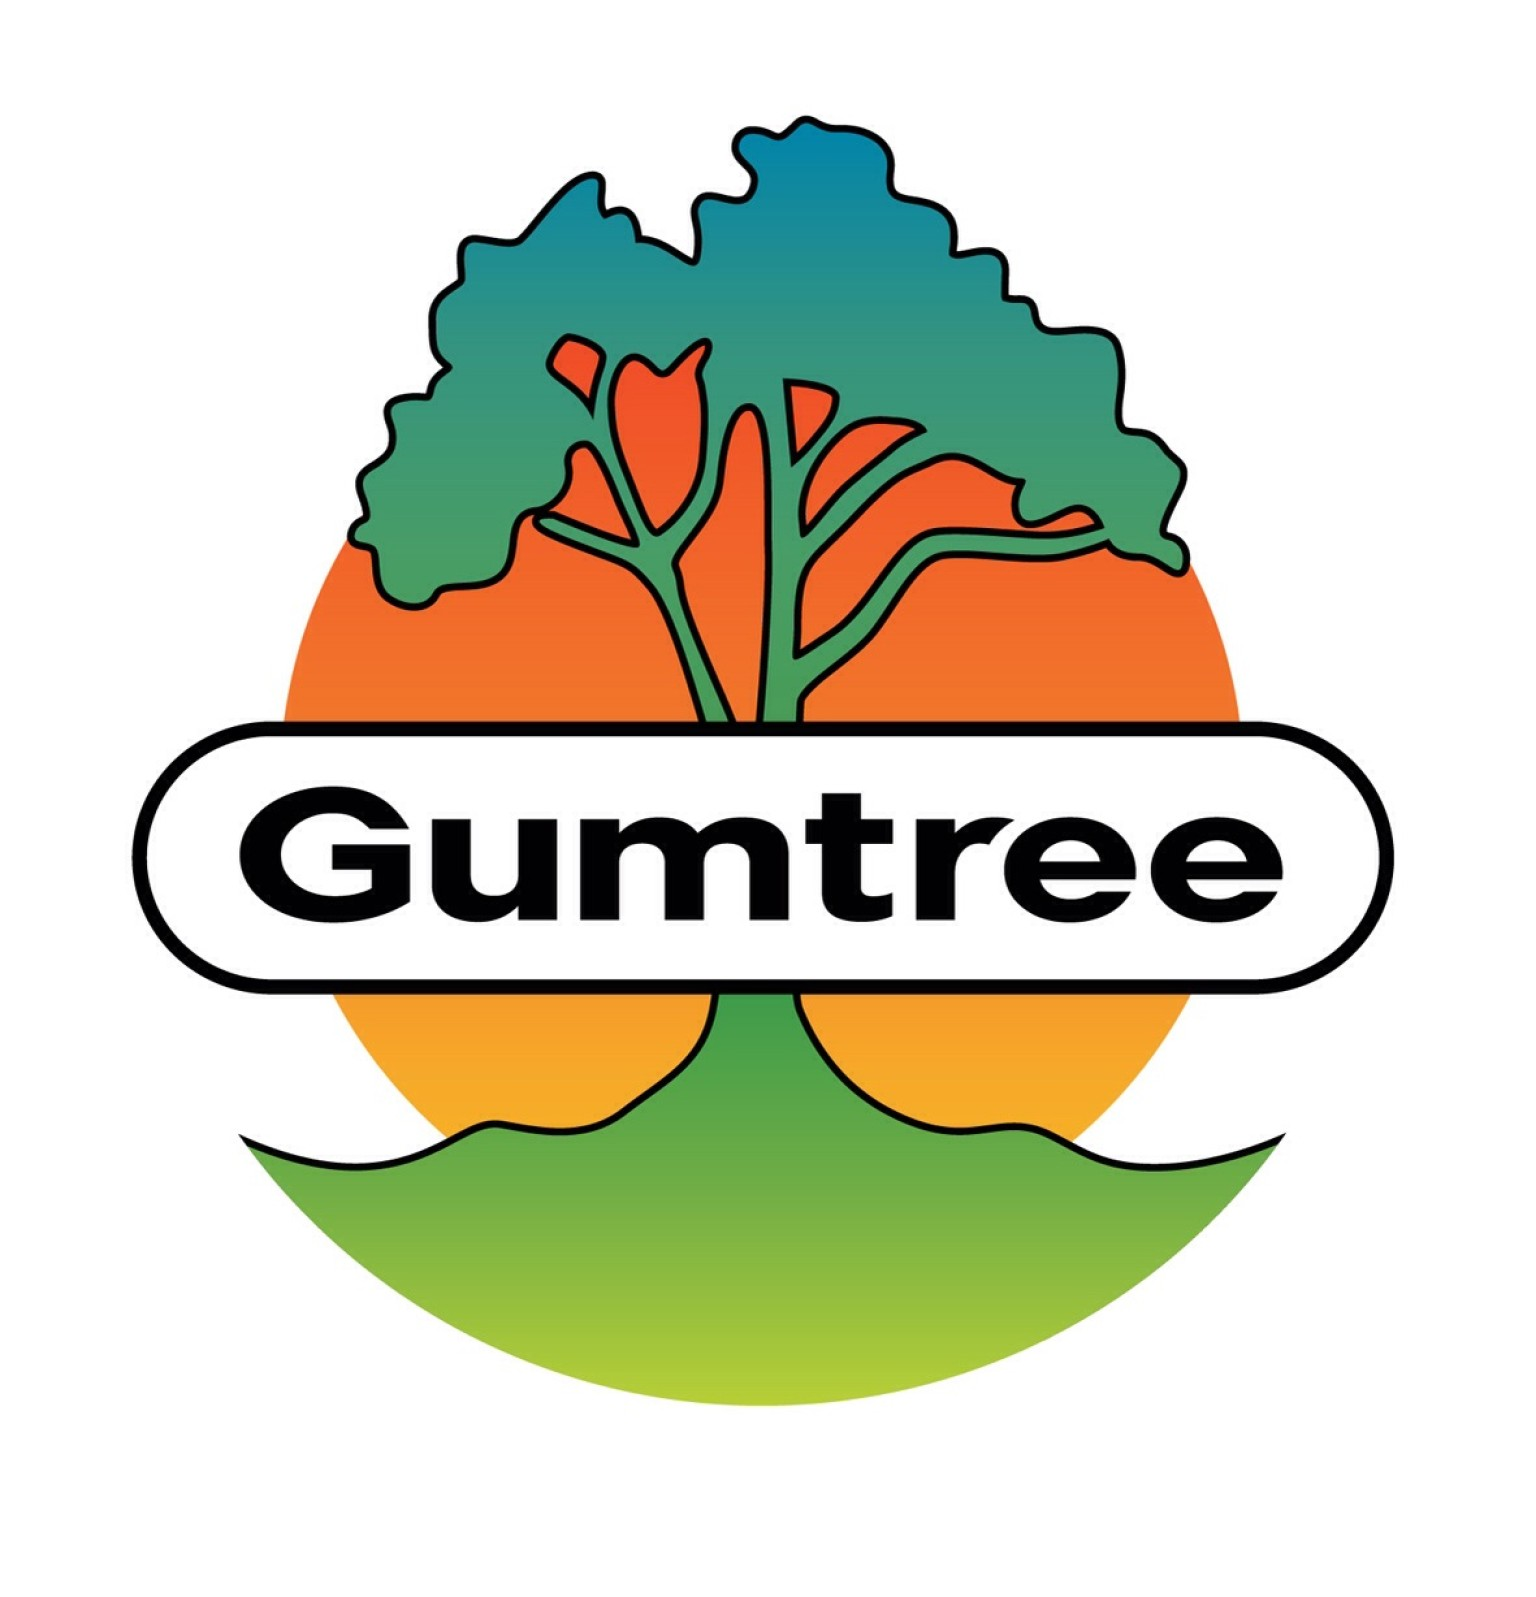 Gumtree is campaigning for the UK's first National Upcycling Day to be held on 24th June.